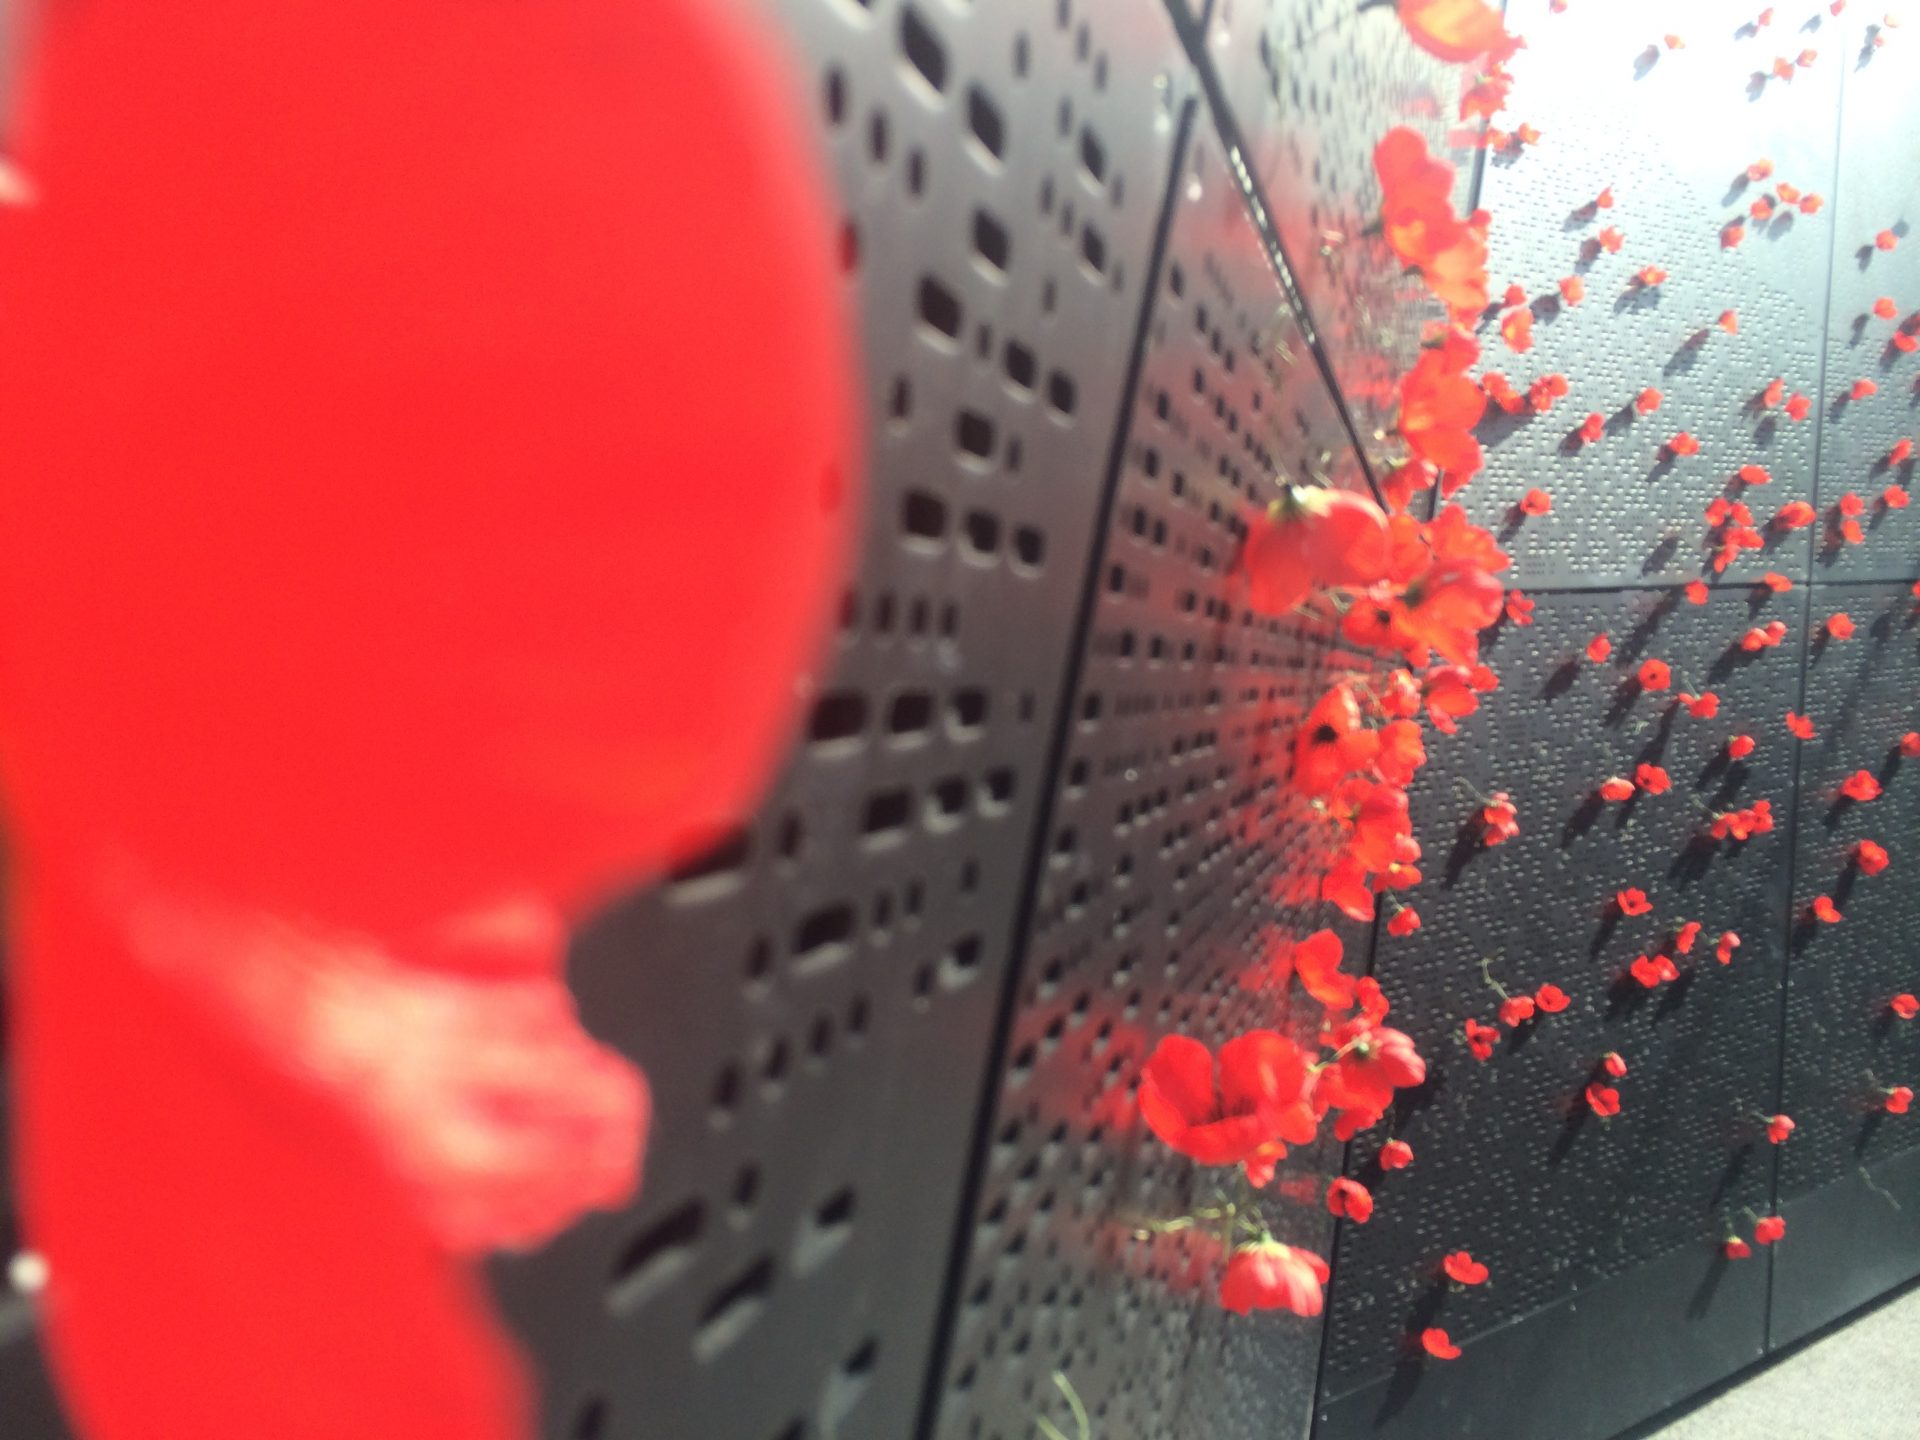 Photo by Trisha Haddock. Poppies in the Shrine of Remembrance.